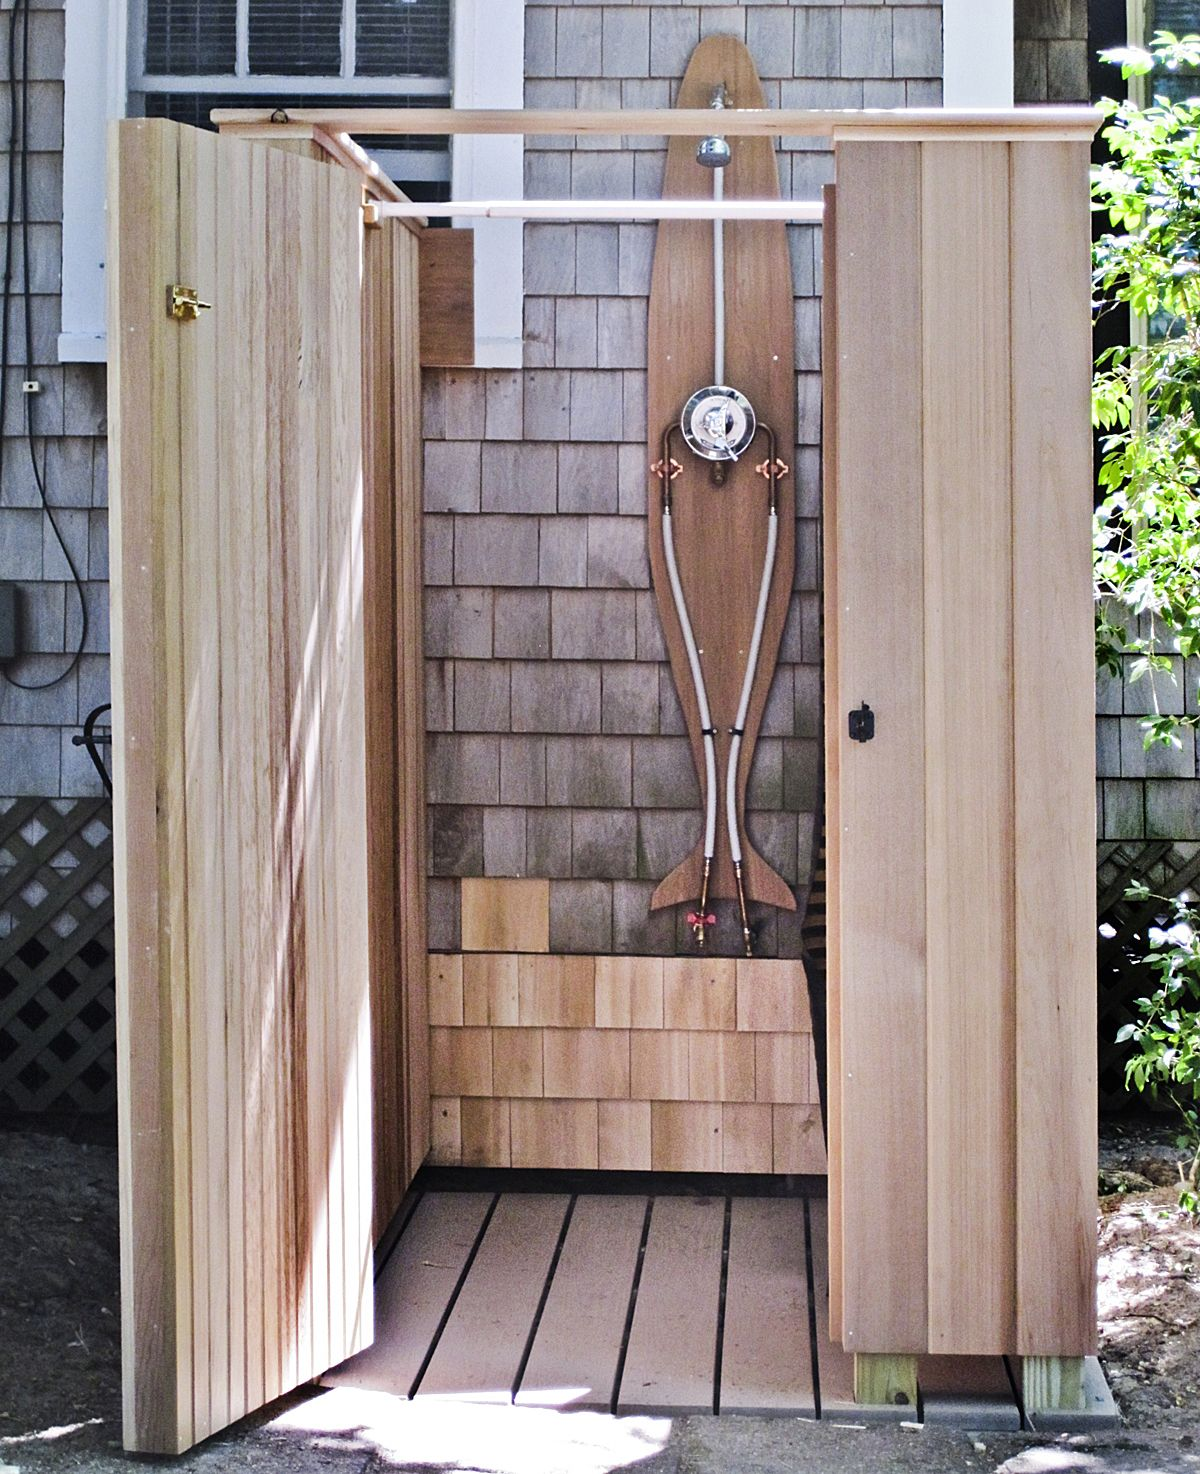 Wooden Outdoor Shower Space In Minimalist Style Presenting Semi Free Standing Showerhead Fixture And Wood Planks